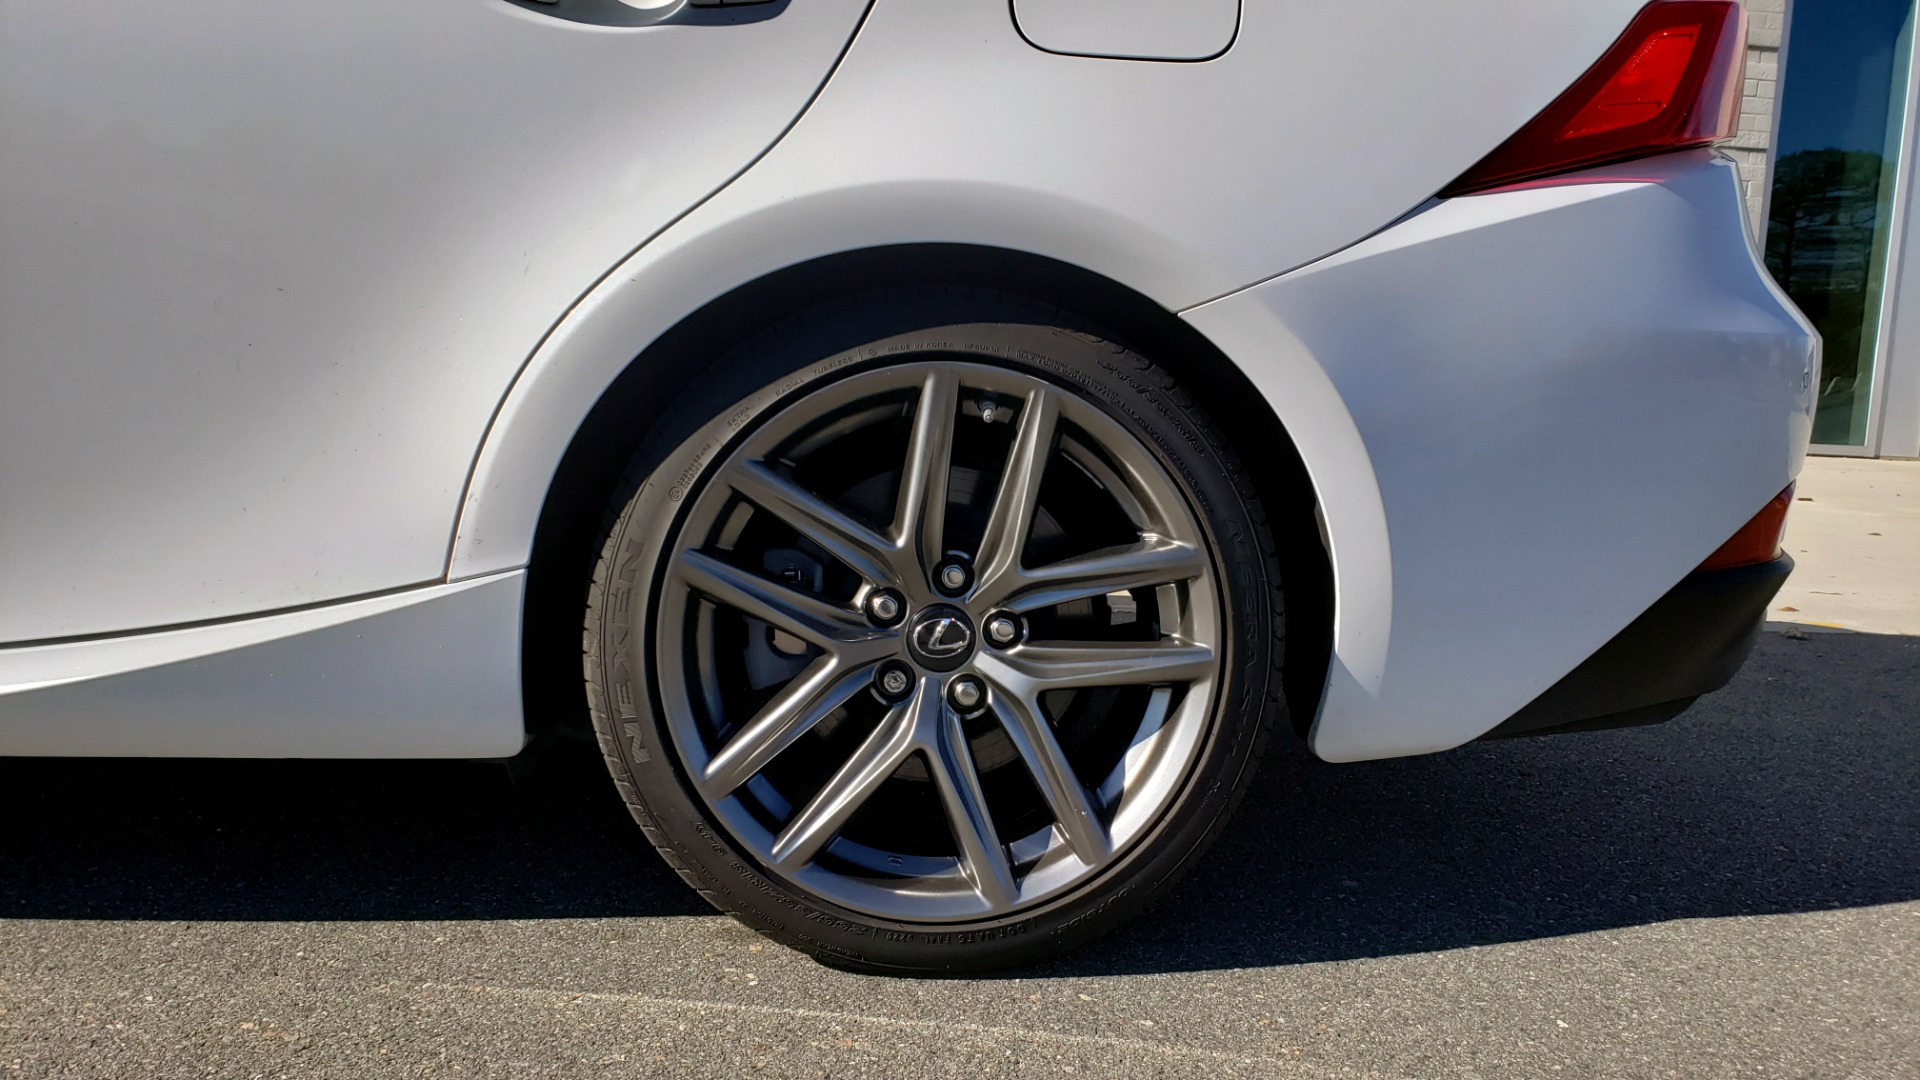 Used 2018 Lexus IS 300 F-SPORT / BSM / SUNROOF / REARVIEW / 18IN WHEELS for sale Sold at Formula Imports in Charlotte NC 28227 73